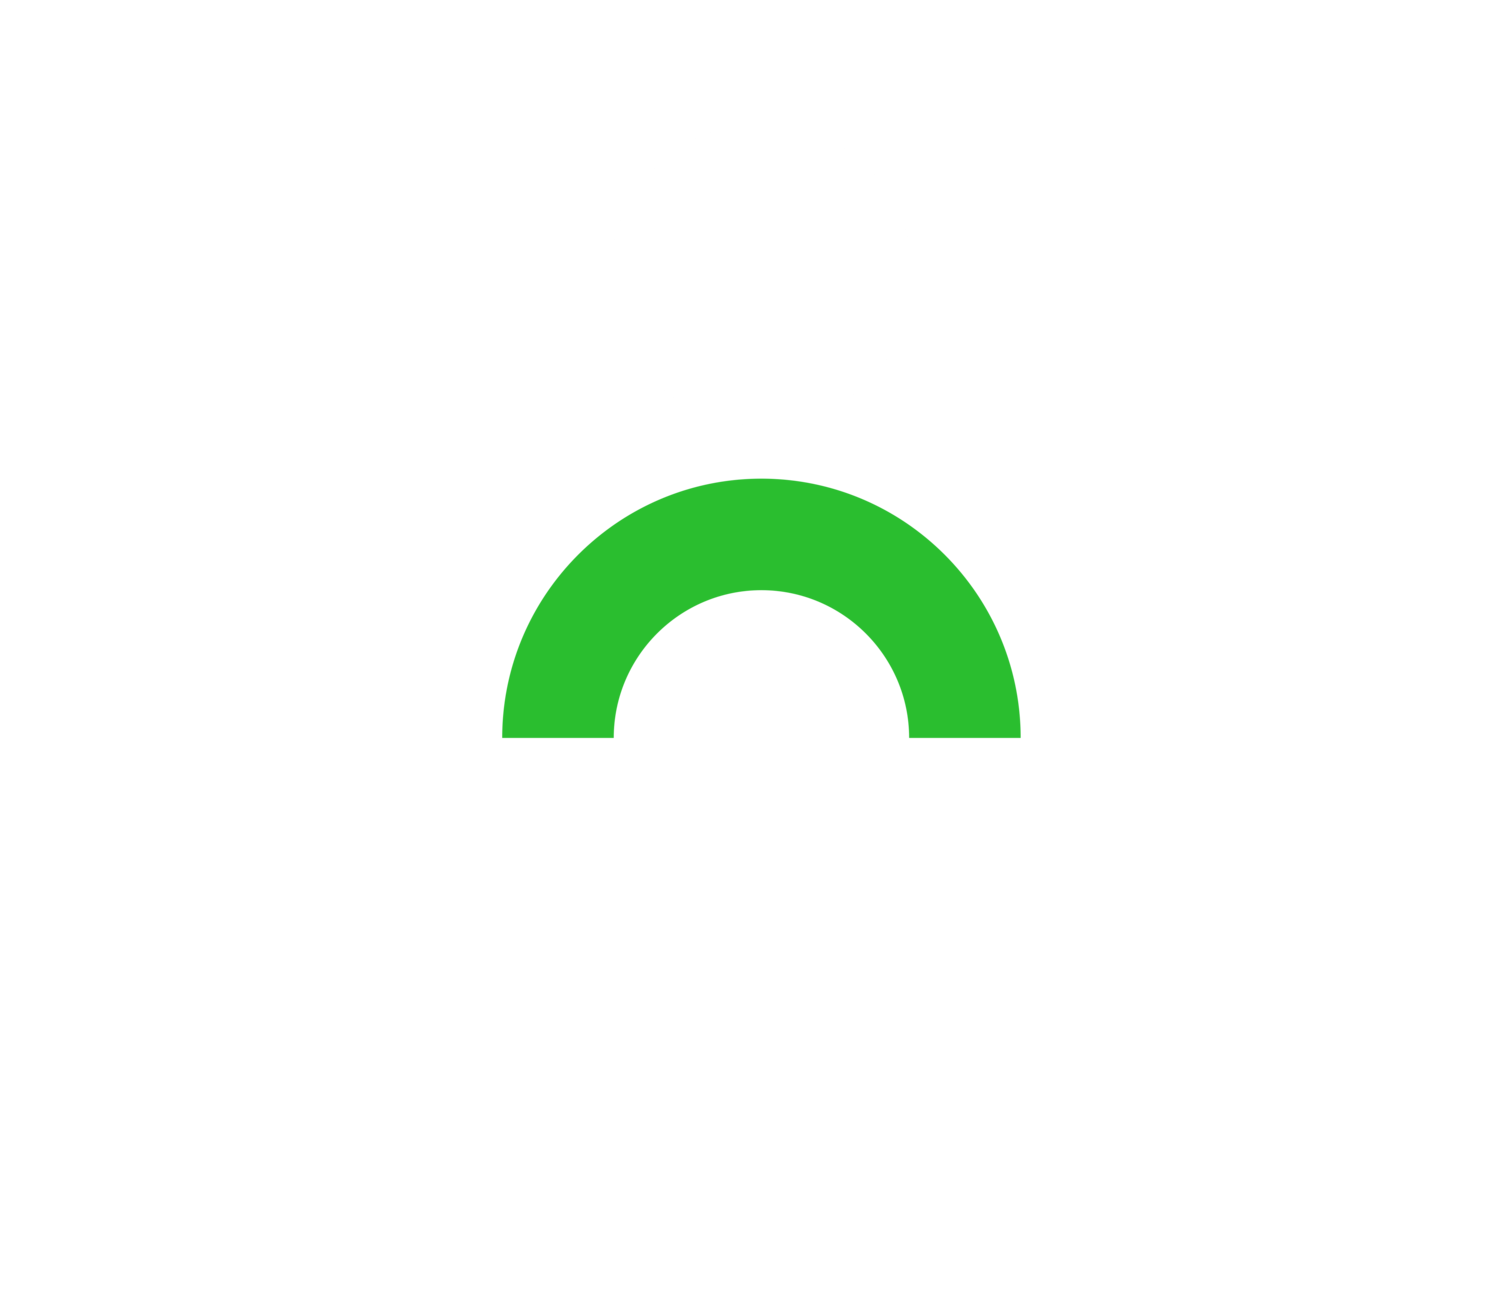 Connecticut Headshot Portraits For Busy Business Executives